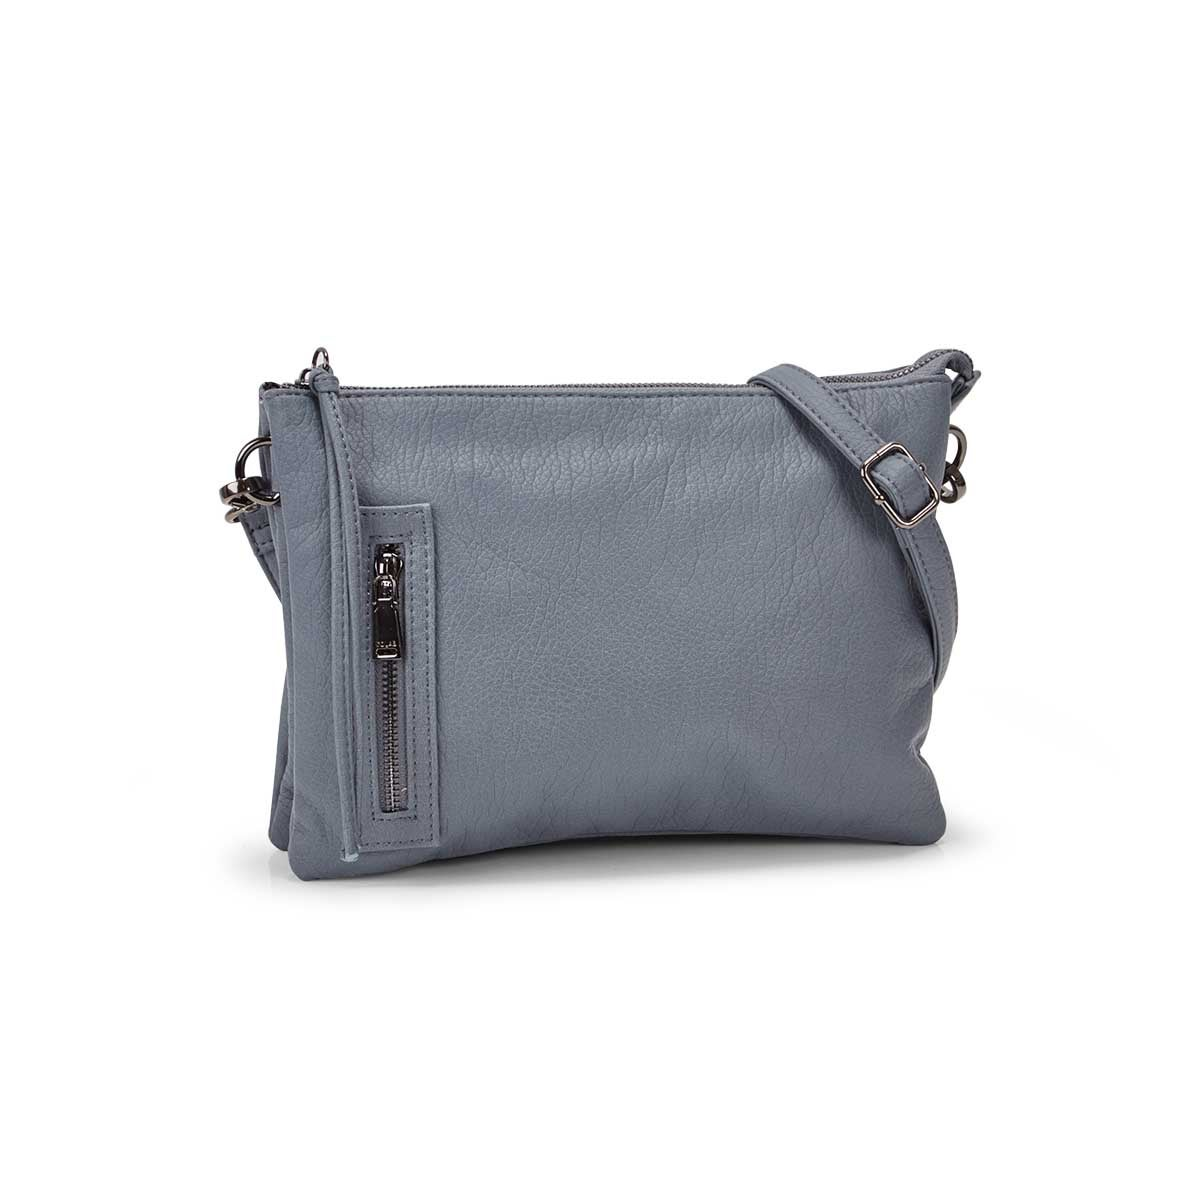 Women's LOFT FLAT shark crossbody bag